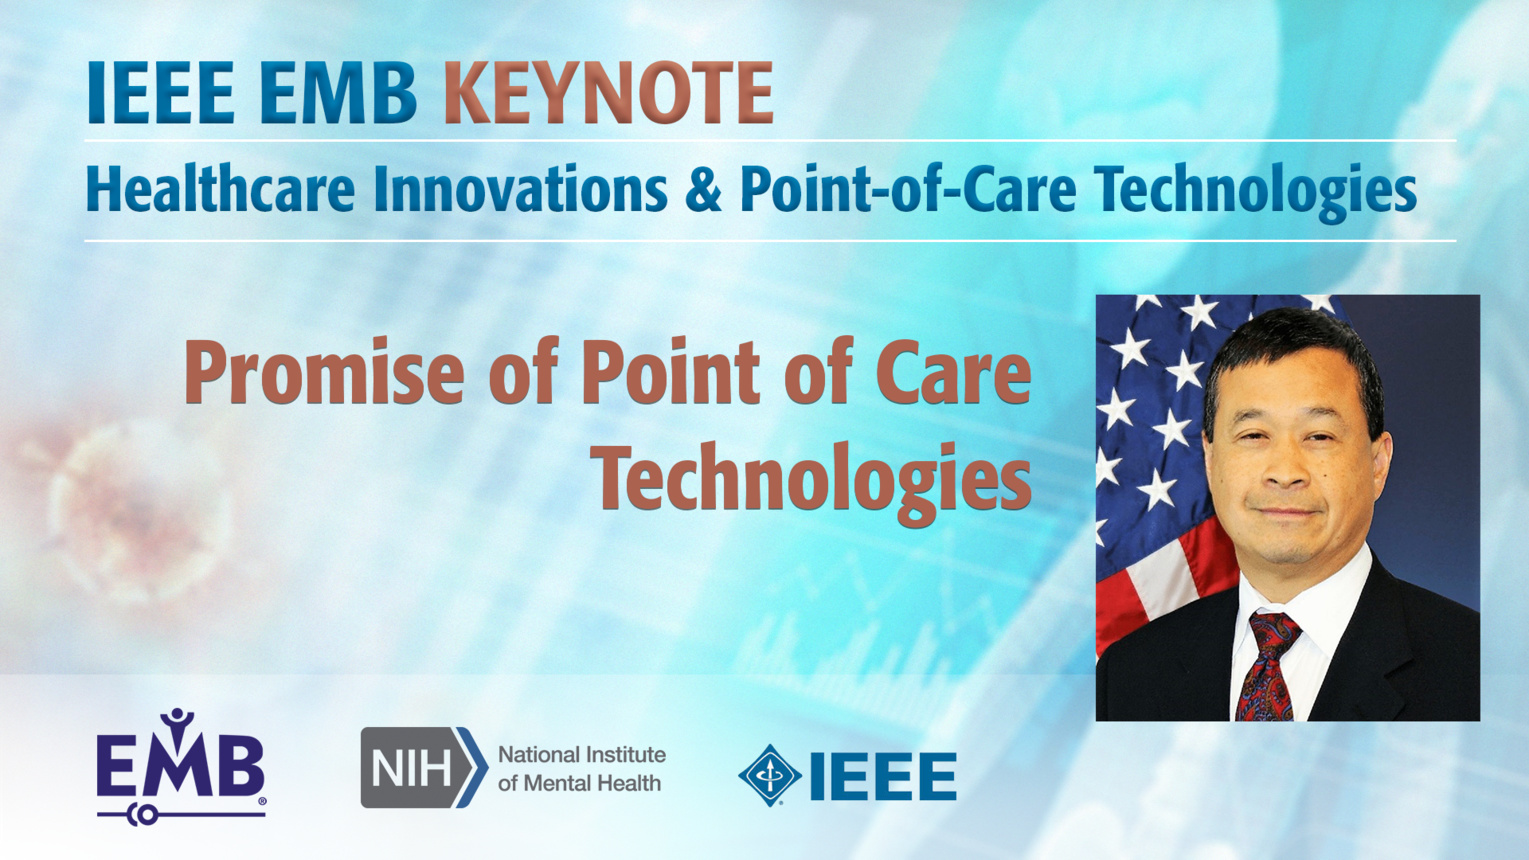 Promise of Point of Care Technologies - Keynote Geoffrey Ling - IEEE EMBS at NIH, 2019